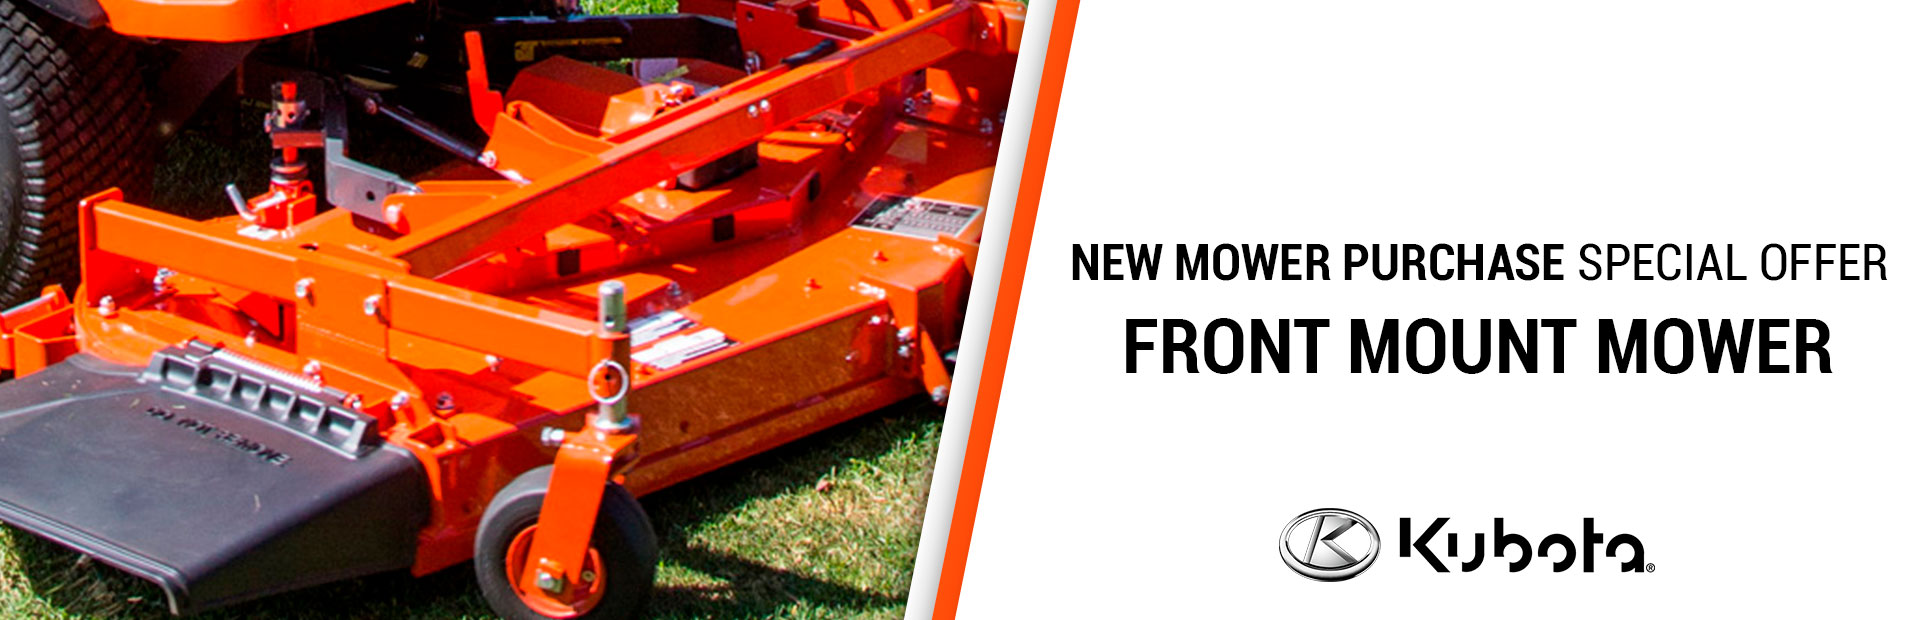 NEW MOWER PURCHASE SPECIAL OFFER-FRONT MOUNT MOWER